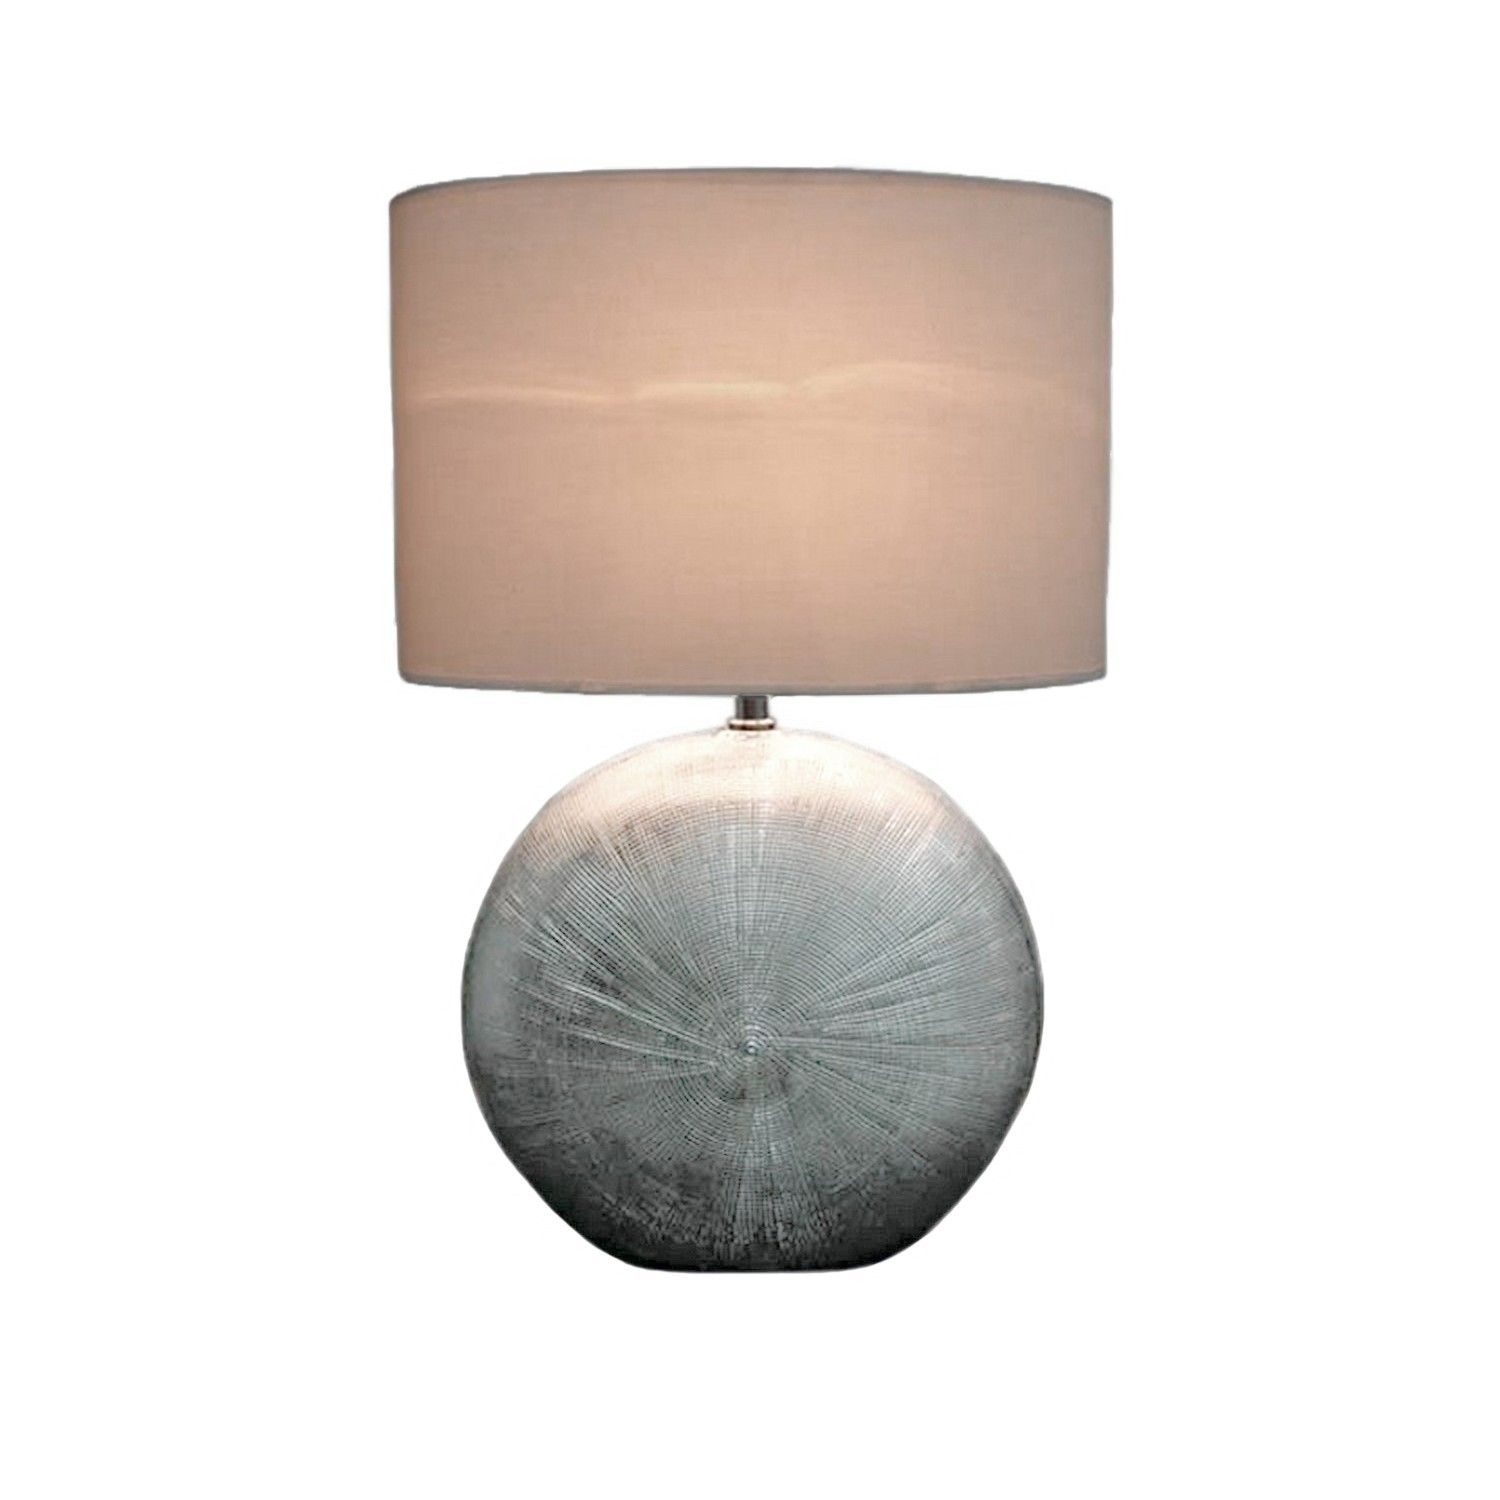 Stunning Large Hand Etched Silver Effect Table Lamp With Shade Brand New